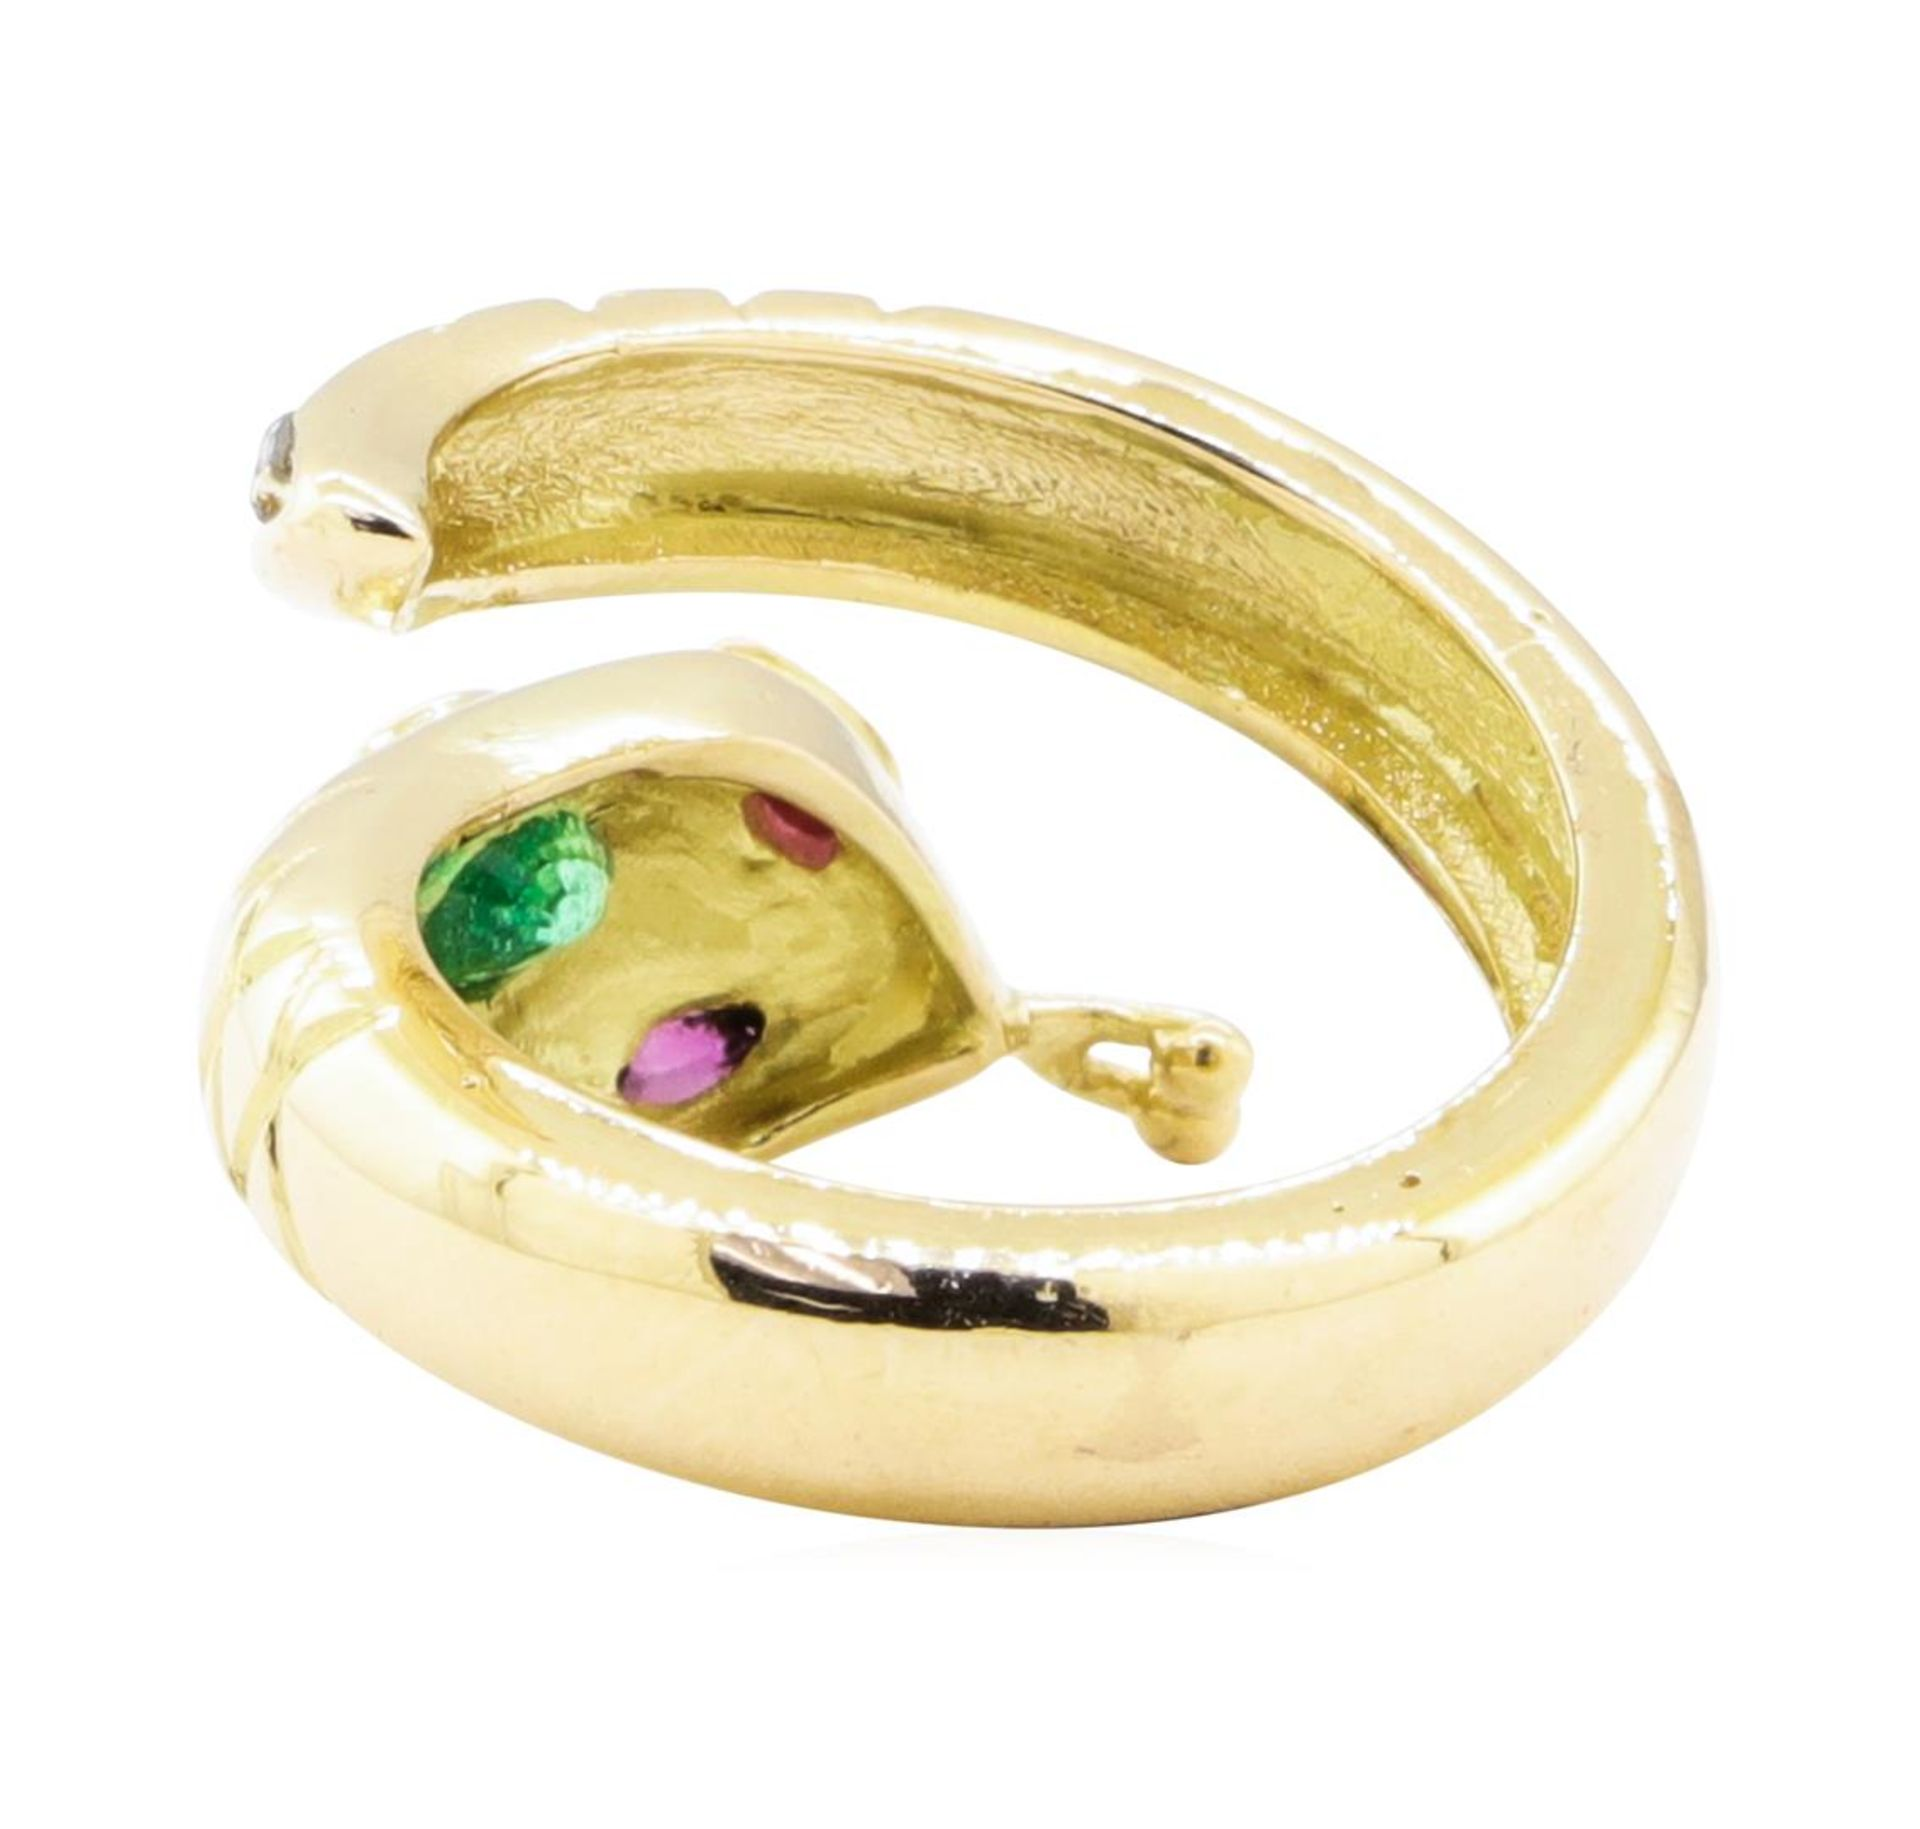 0.66ctw Emerald, Ruby, and Diamond Snake Ring - 14KT Yellow Gold - Image 3 of 4